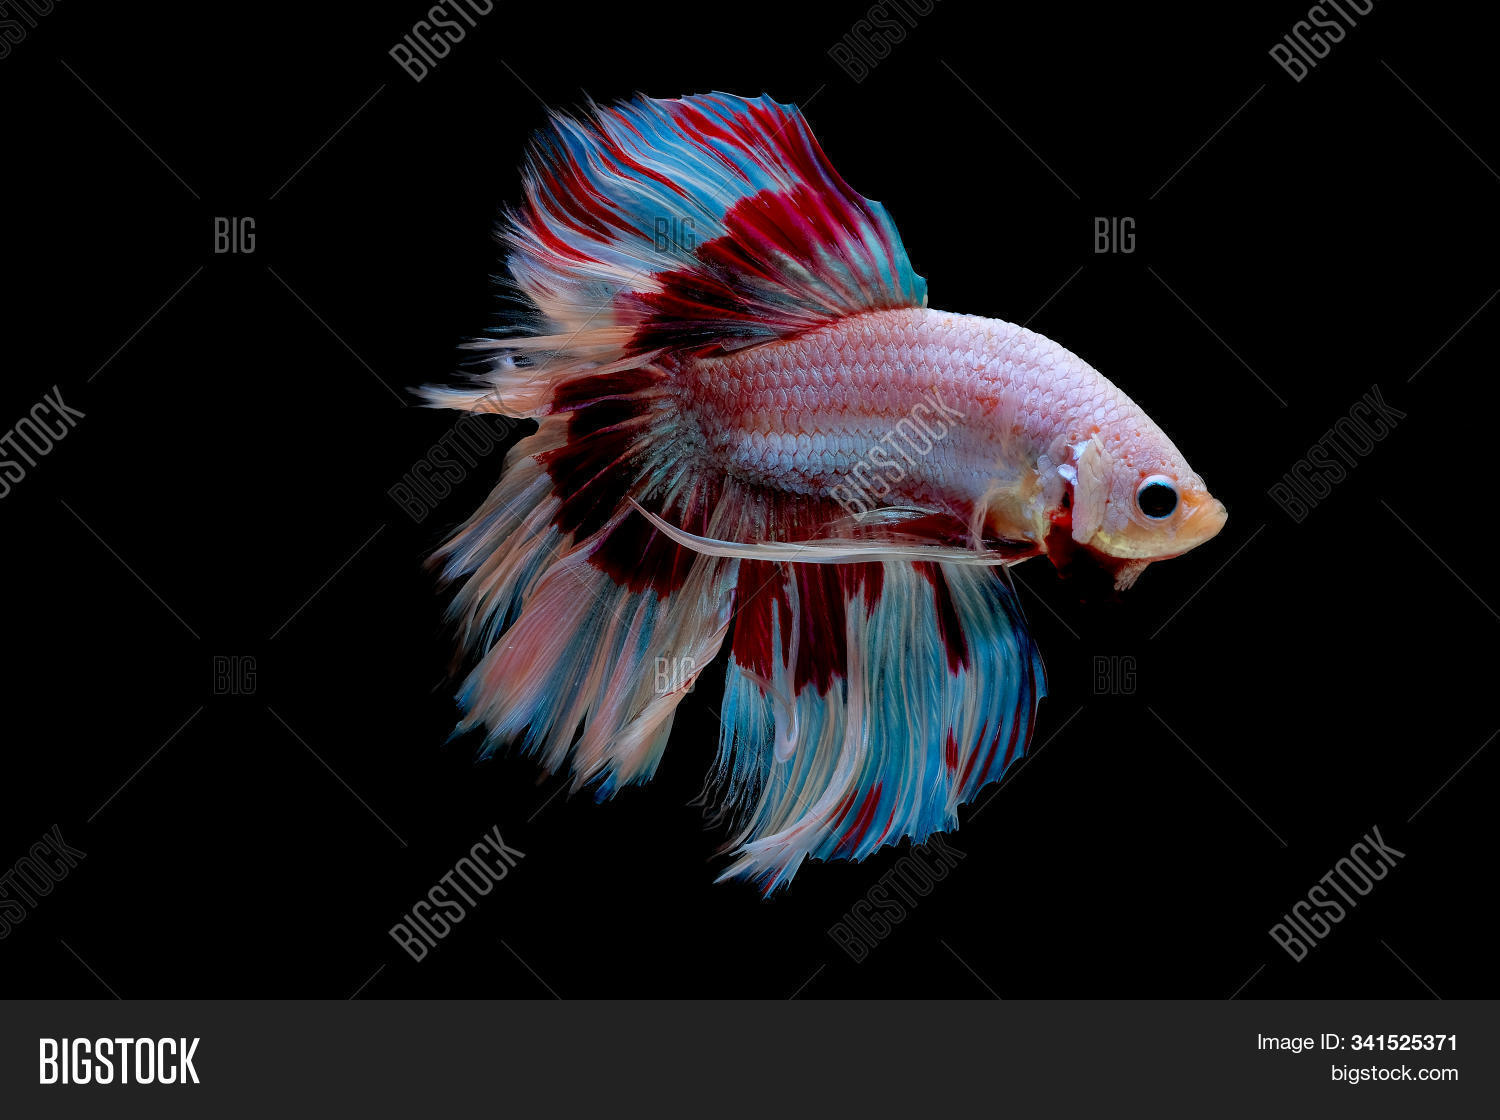 Colorful Main Color Image Photo Free Trial Bigstock